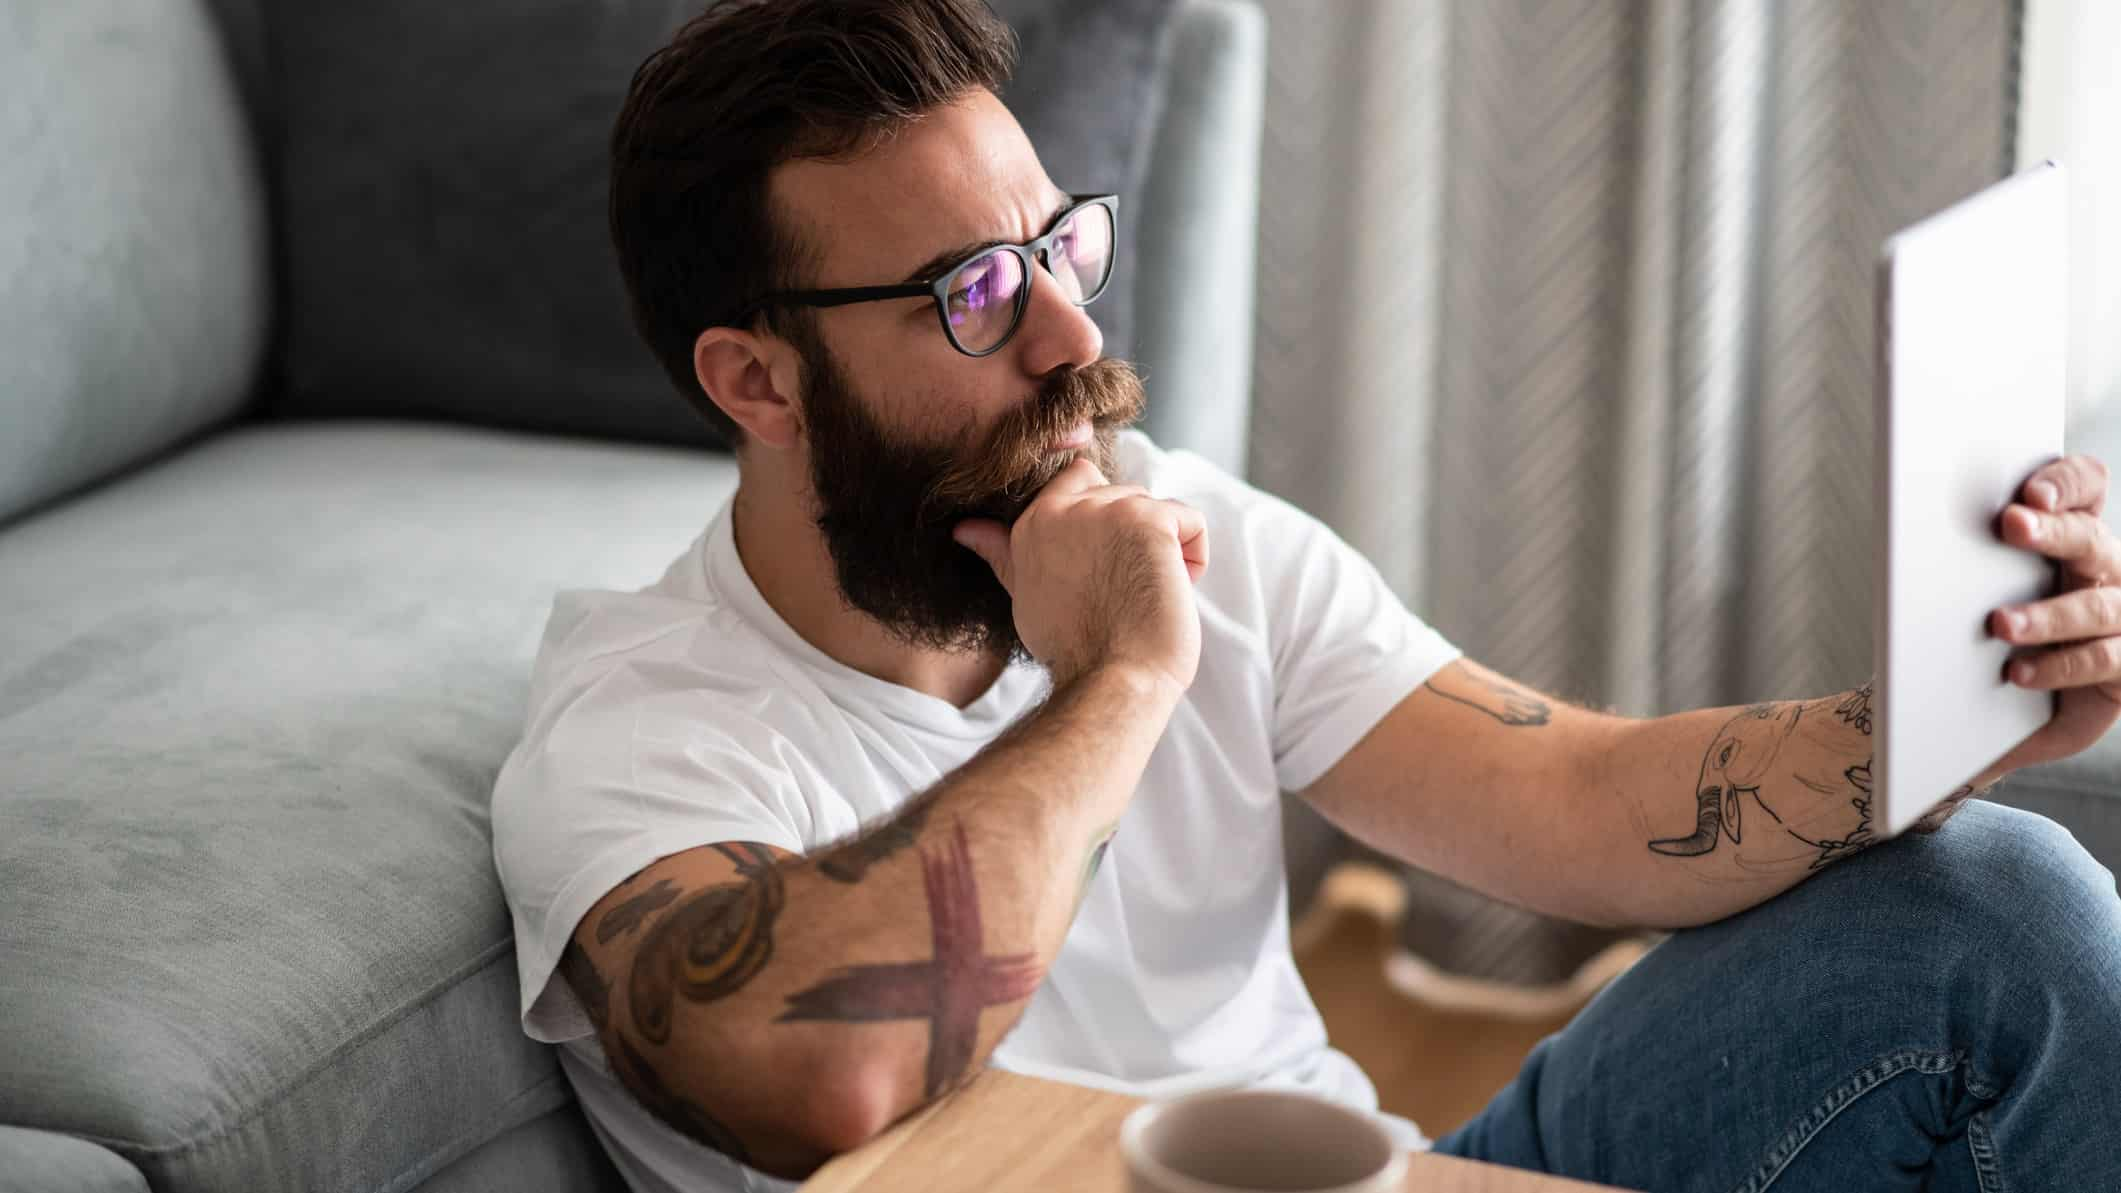 a hipster looking man with bushy beard and multiple arm tattoos sits on the floor against a sofa reading a tablet with his hand on his chin as though he is deep in thought.